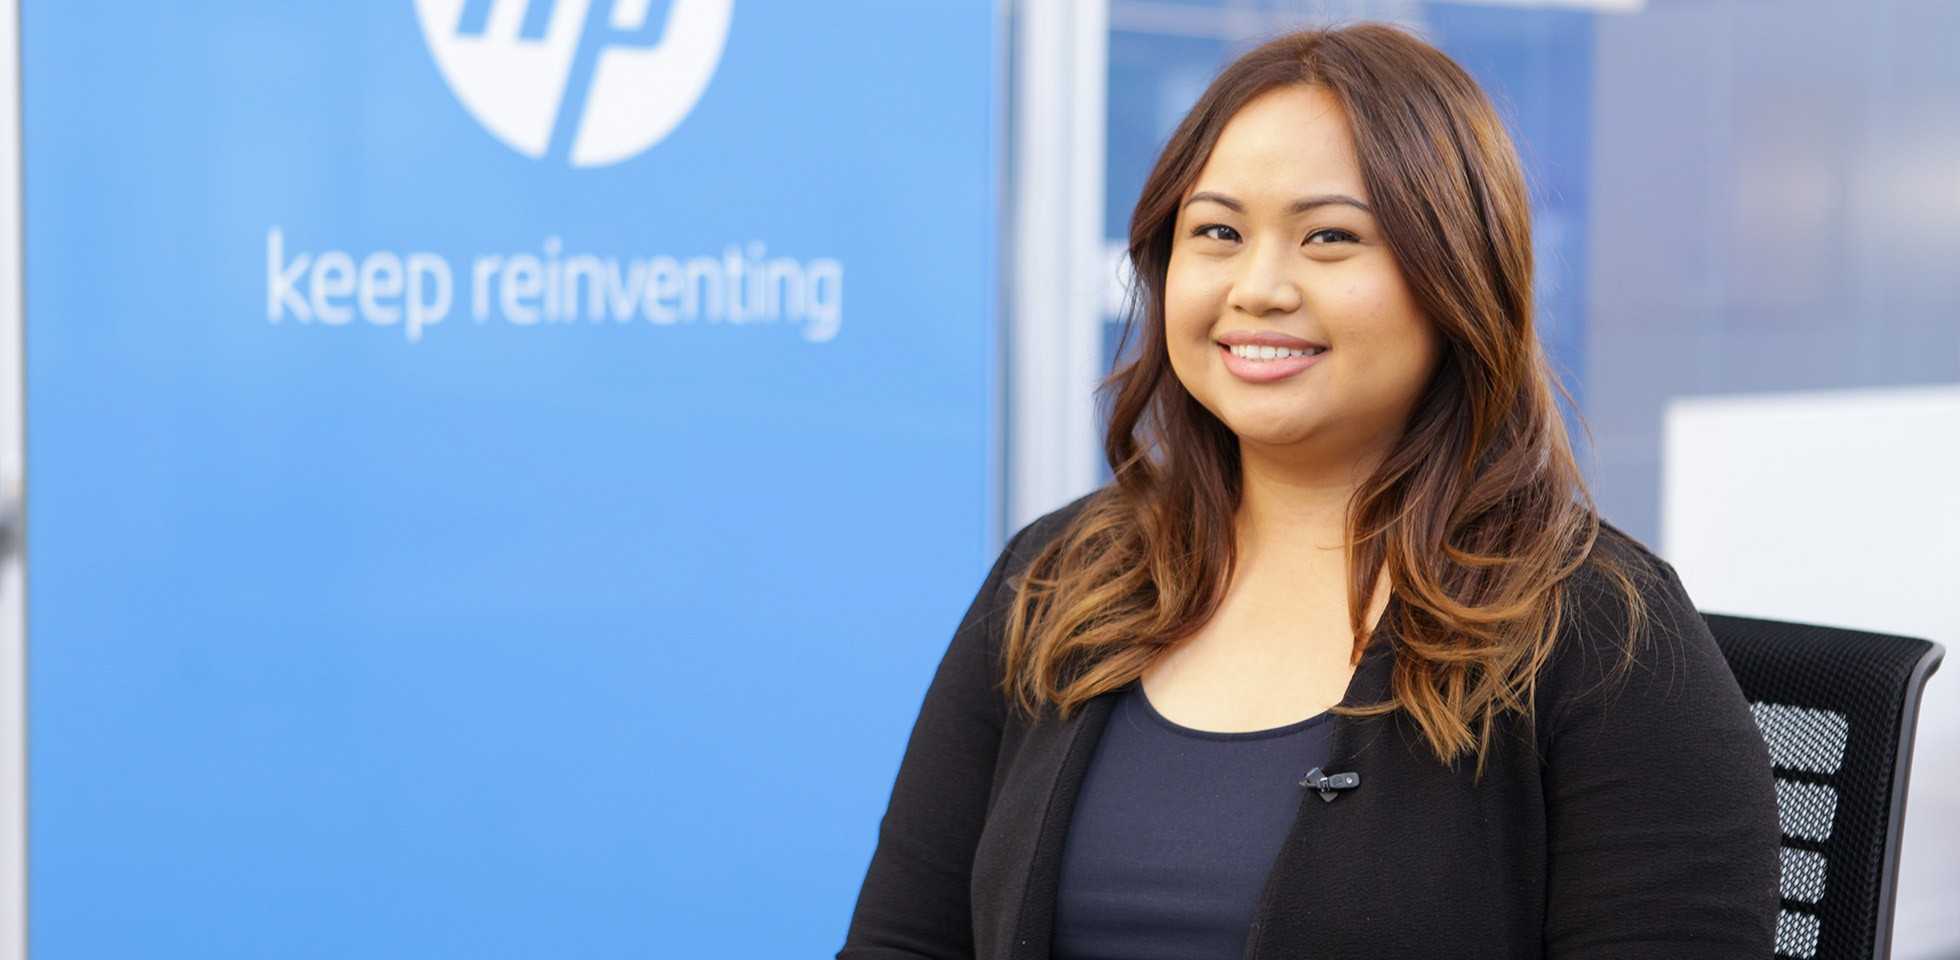 Sara Sabino, Planning & Operations Program Manager - HP Careers